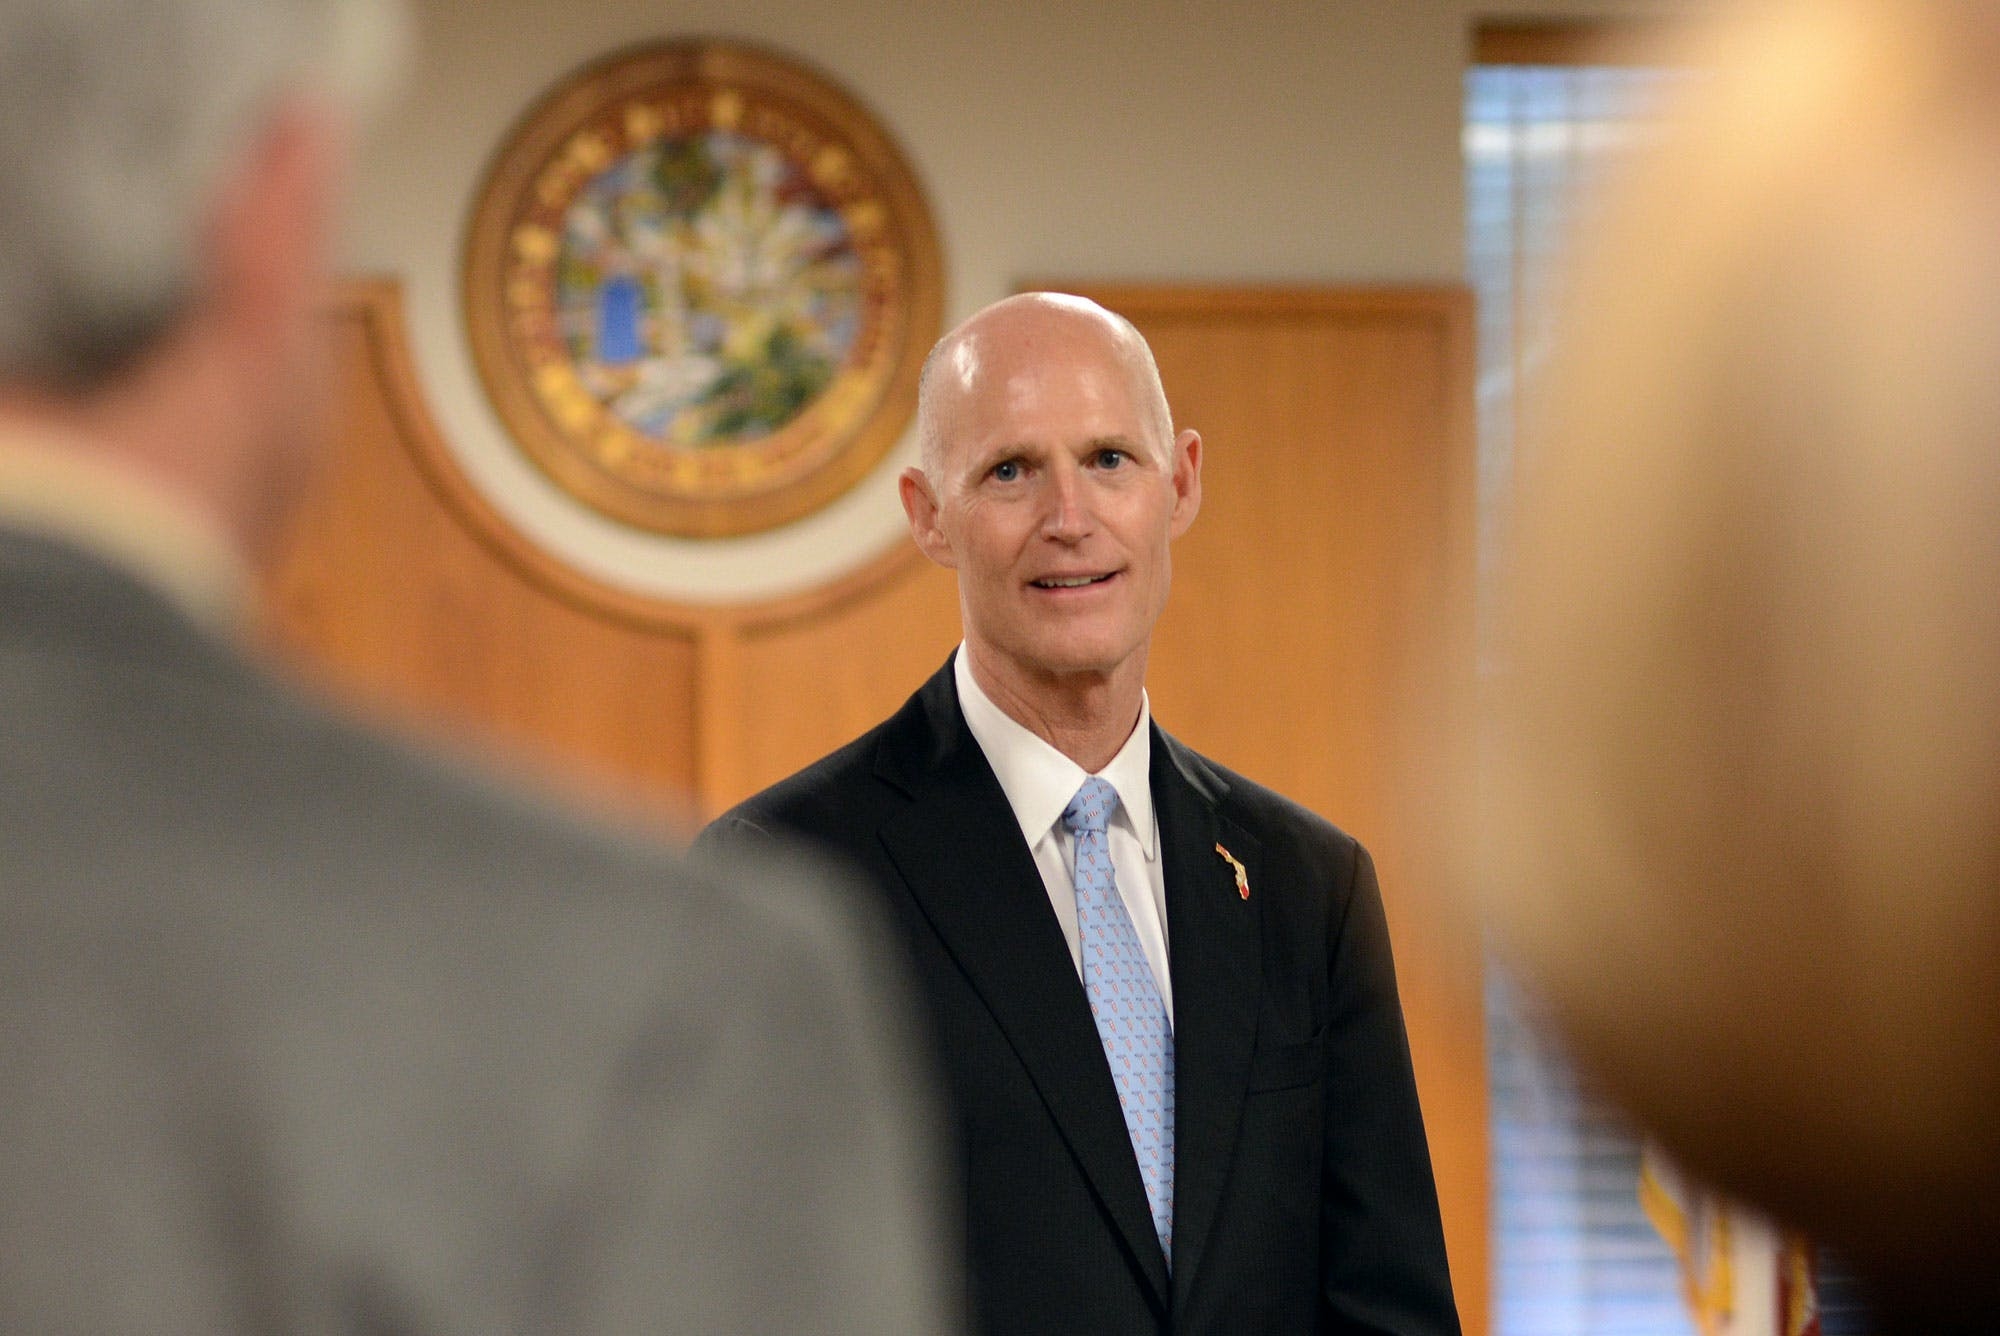 Florida Judge demands the state lift its marijuana smoking ban New Yorks Health Department To Recommend The State Legalizes Recreational Marijuana